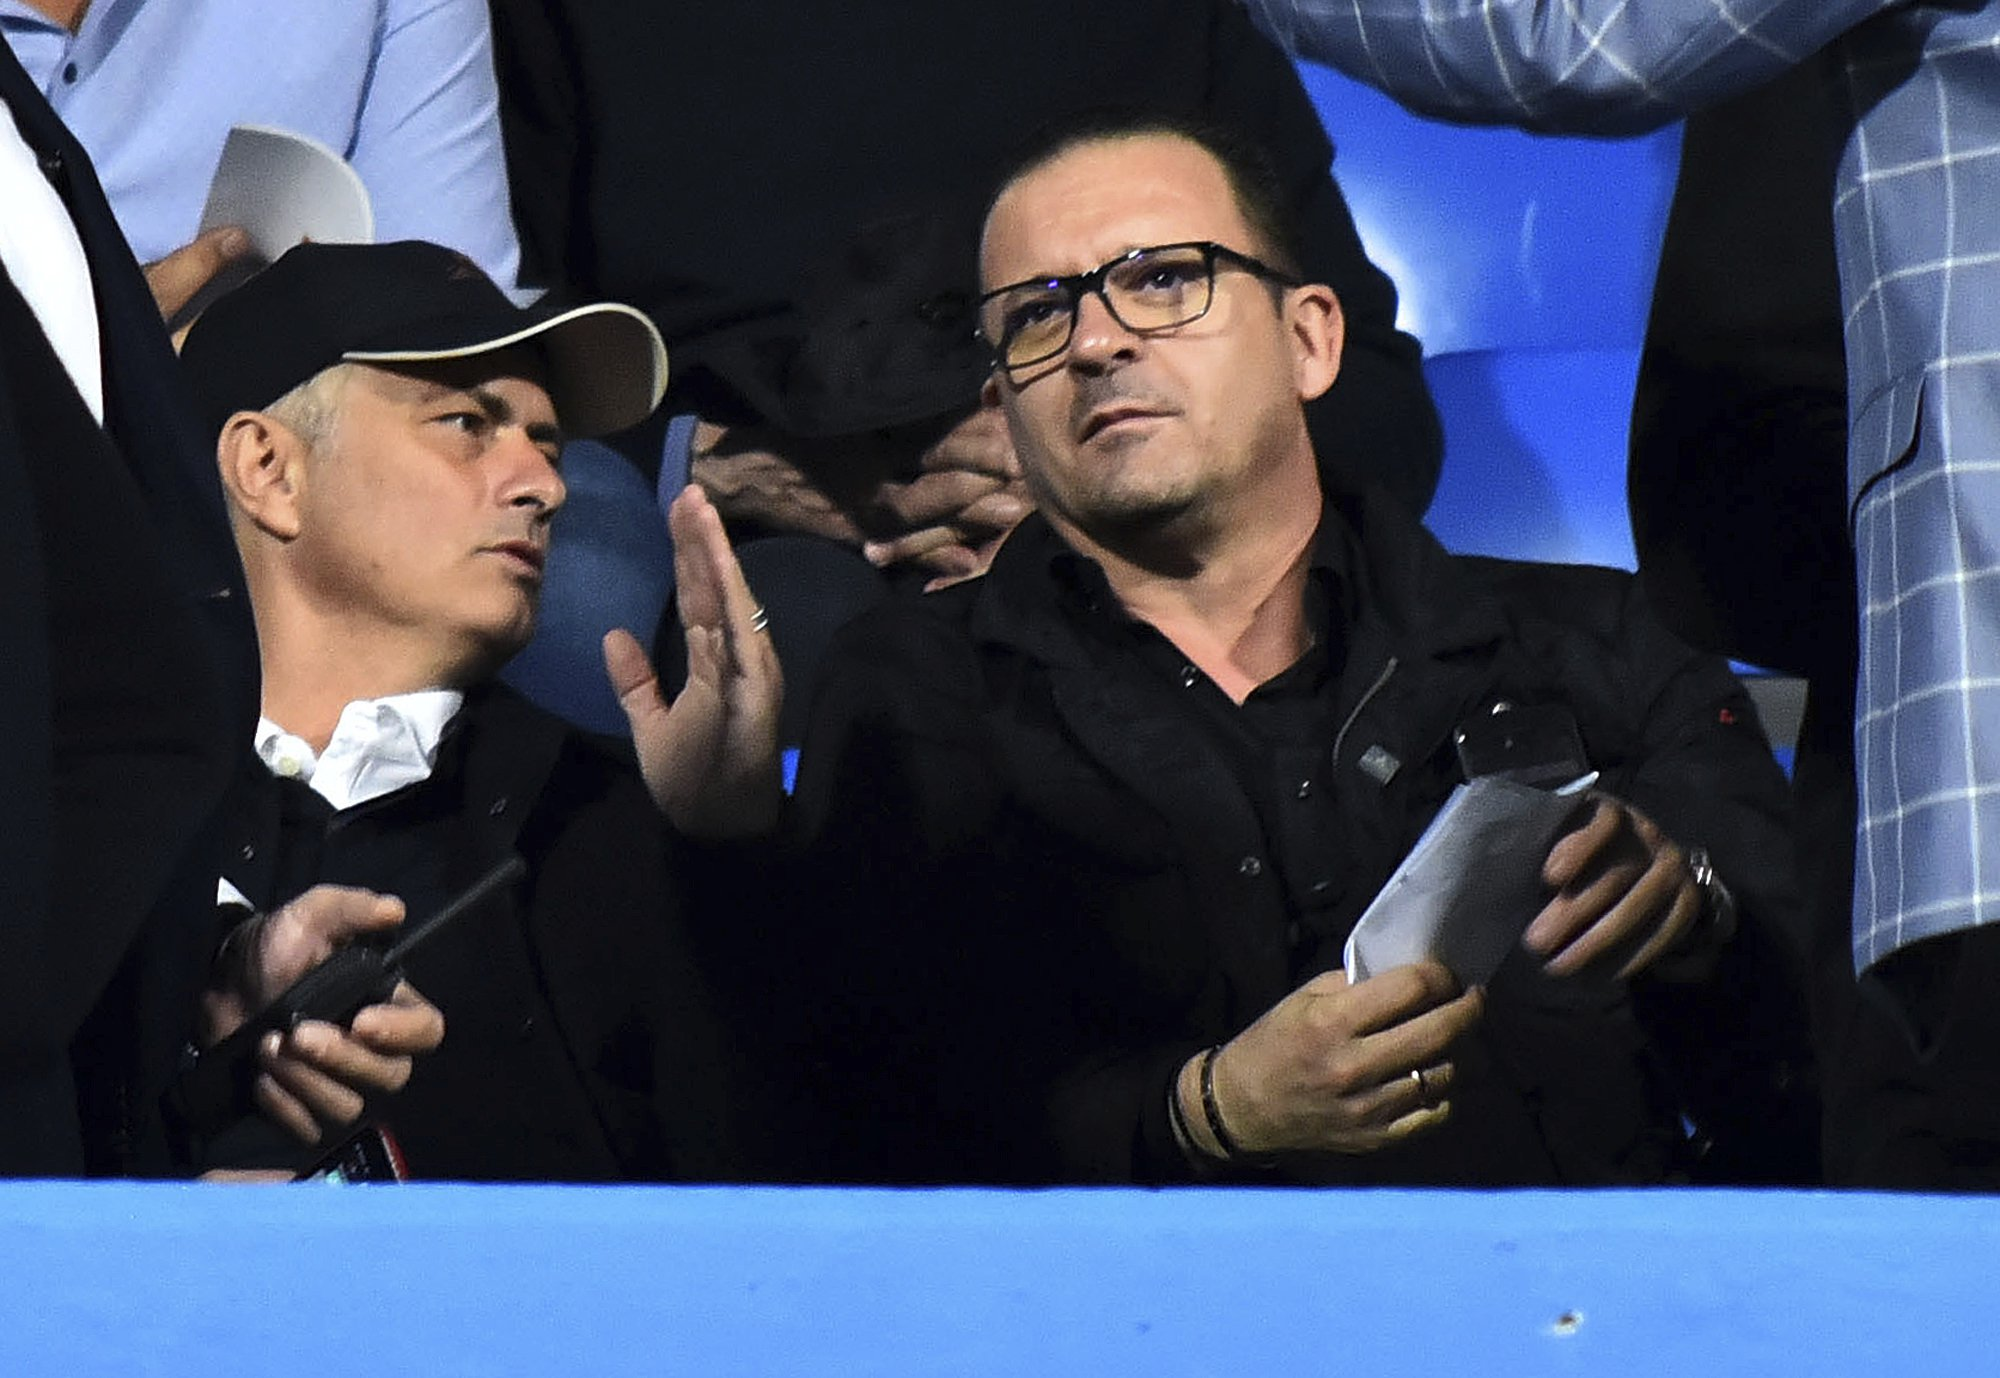 Manchester United's manager Jose Mourinho, left, speaks with Montenegrin ex soccer player Predrag Mijatovic prior the UEFA Nations League soccer match between Montenegro and Serbia at the City stadium in Podgorica, Montenegro, Thursday Oct. 11, 2018. (AP Photo/Risto Bozovic)